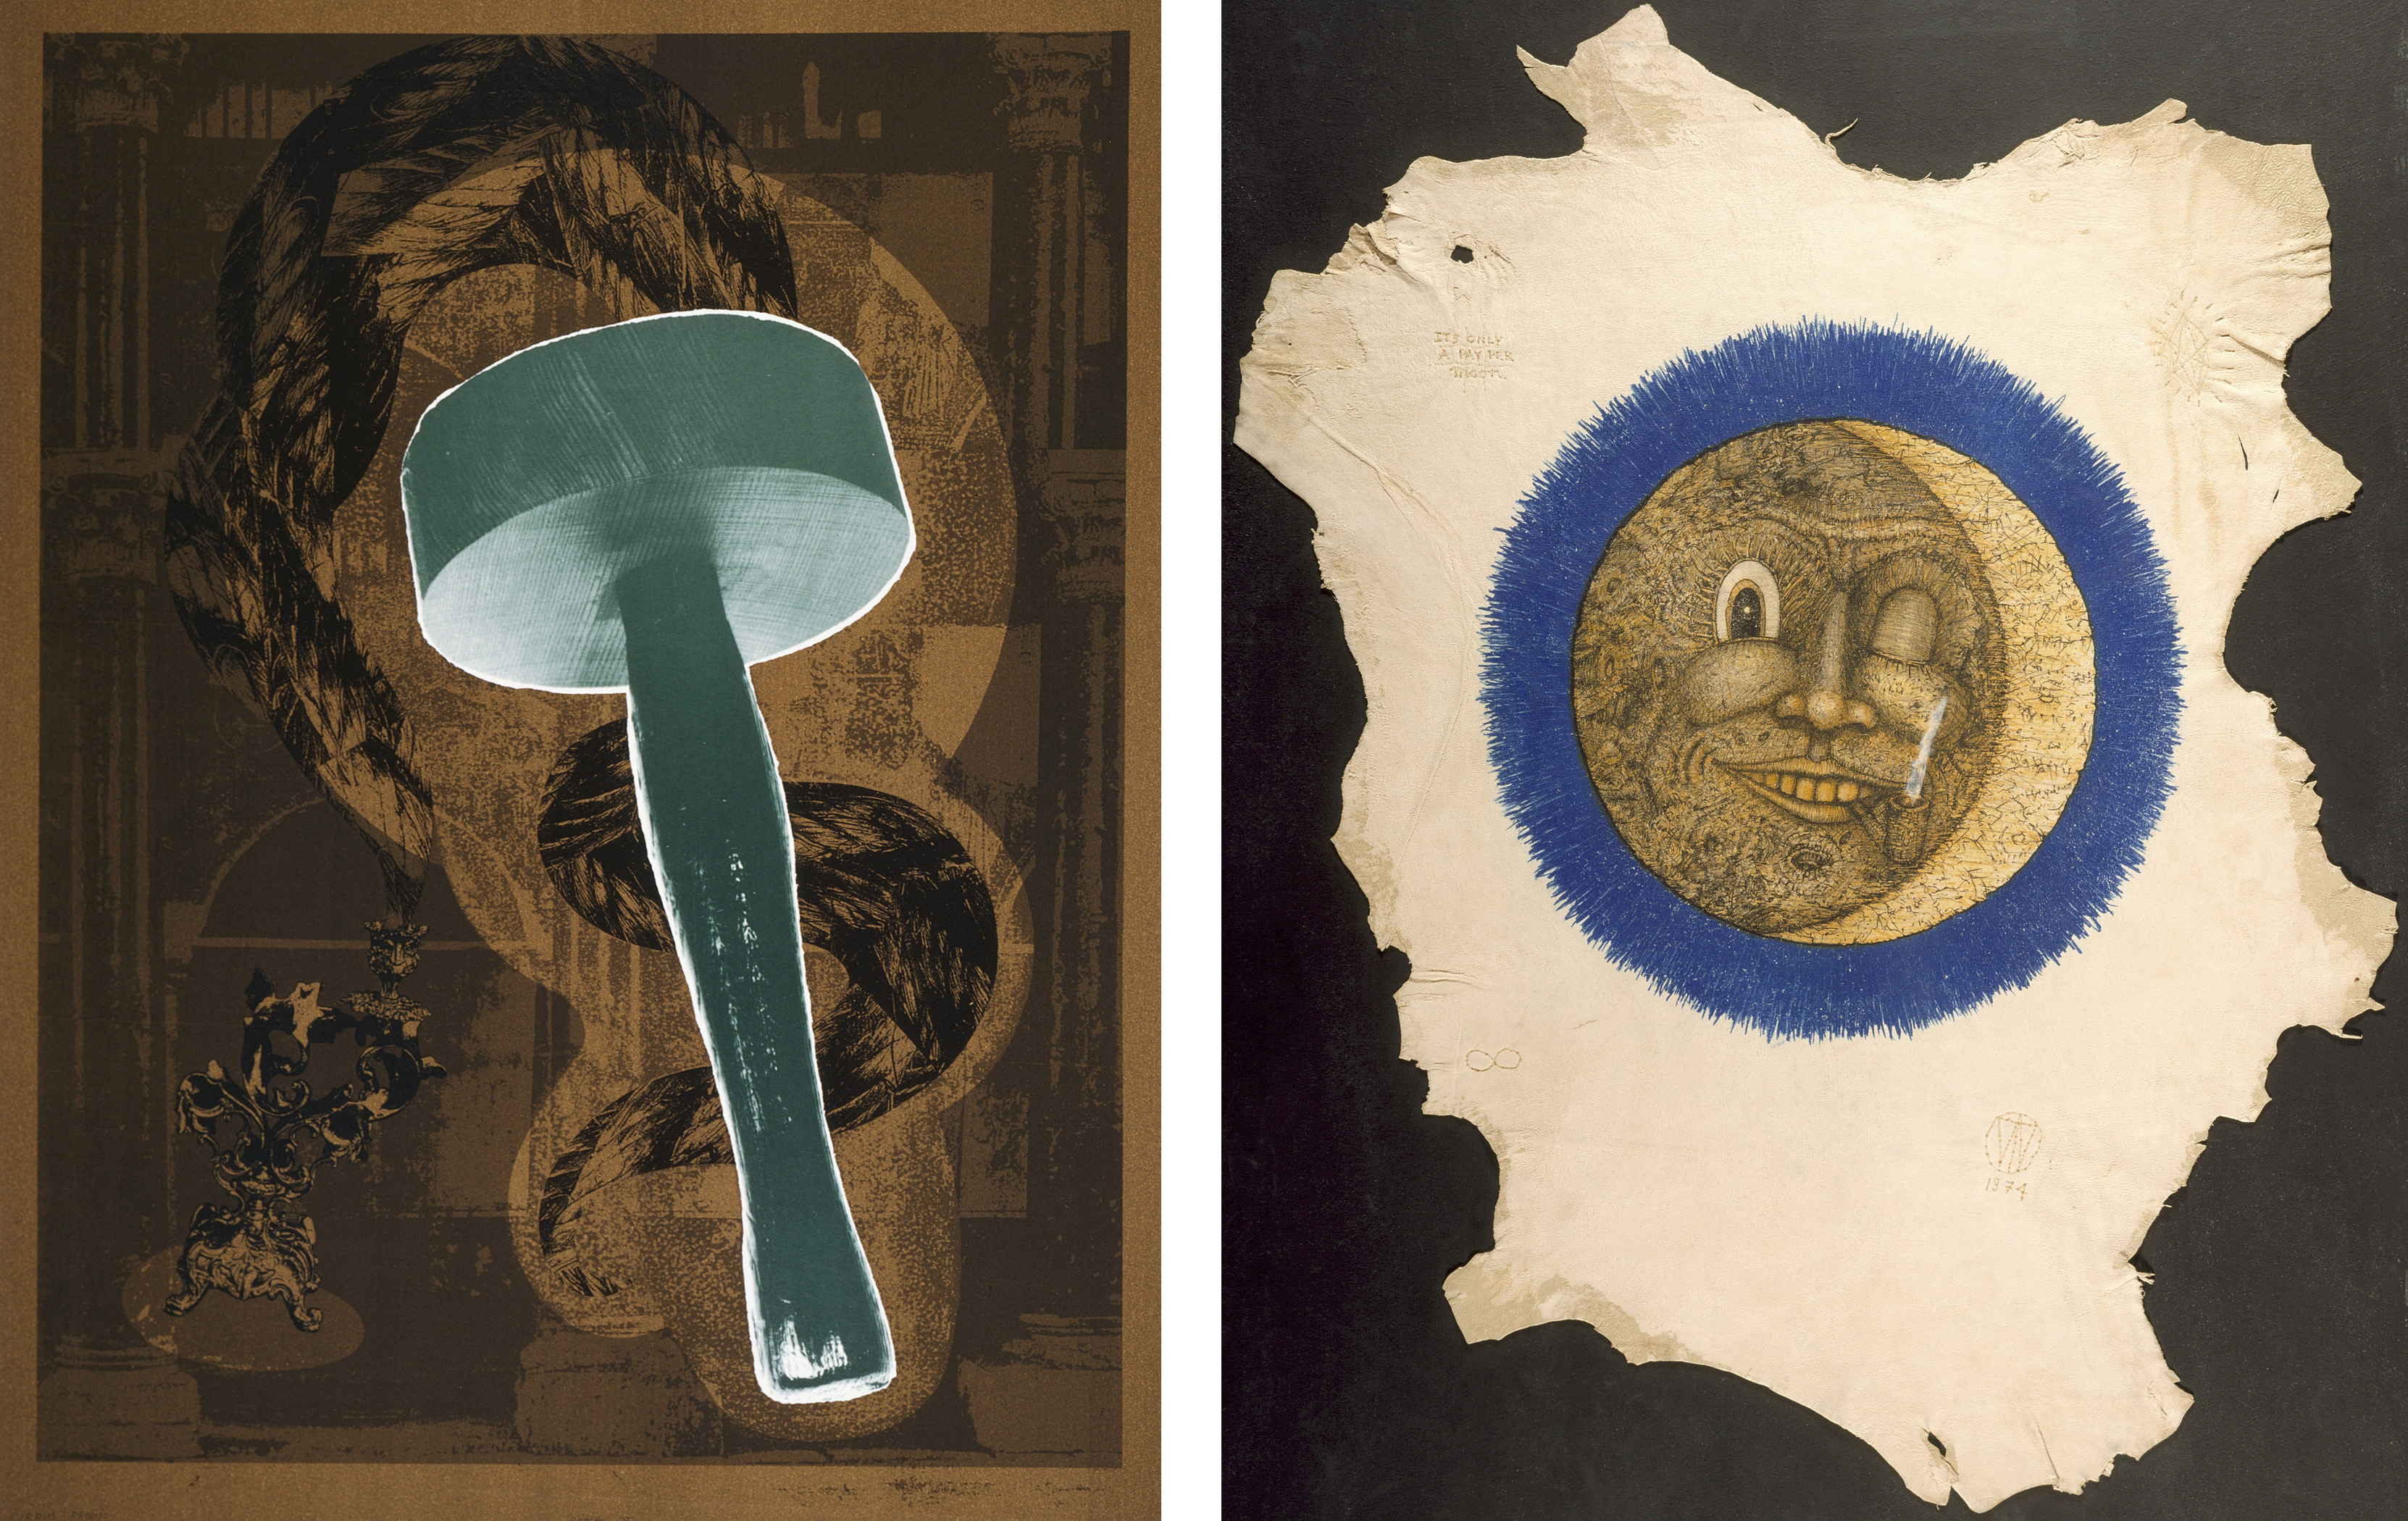 Left: Jill Giegerich, Soma II, 1990, © Jill Giegerich; Right: William T. Wiley, It's Only a Pay Per Moon, 1974, © William T. Wiley. Both images: Los Angeles County Museum of Art, Cirrus Editions Archive, purchased with funds provided by the Director's Roundtable, and gift of Cirrus Editions, photo © Museum Associates/LACMA